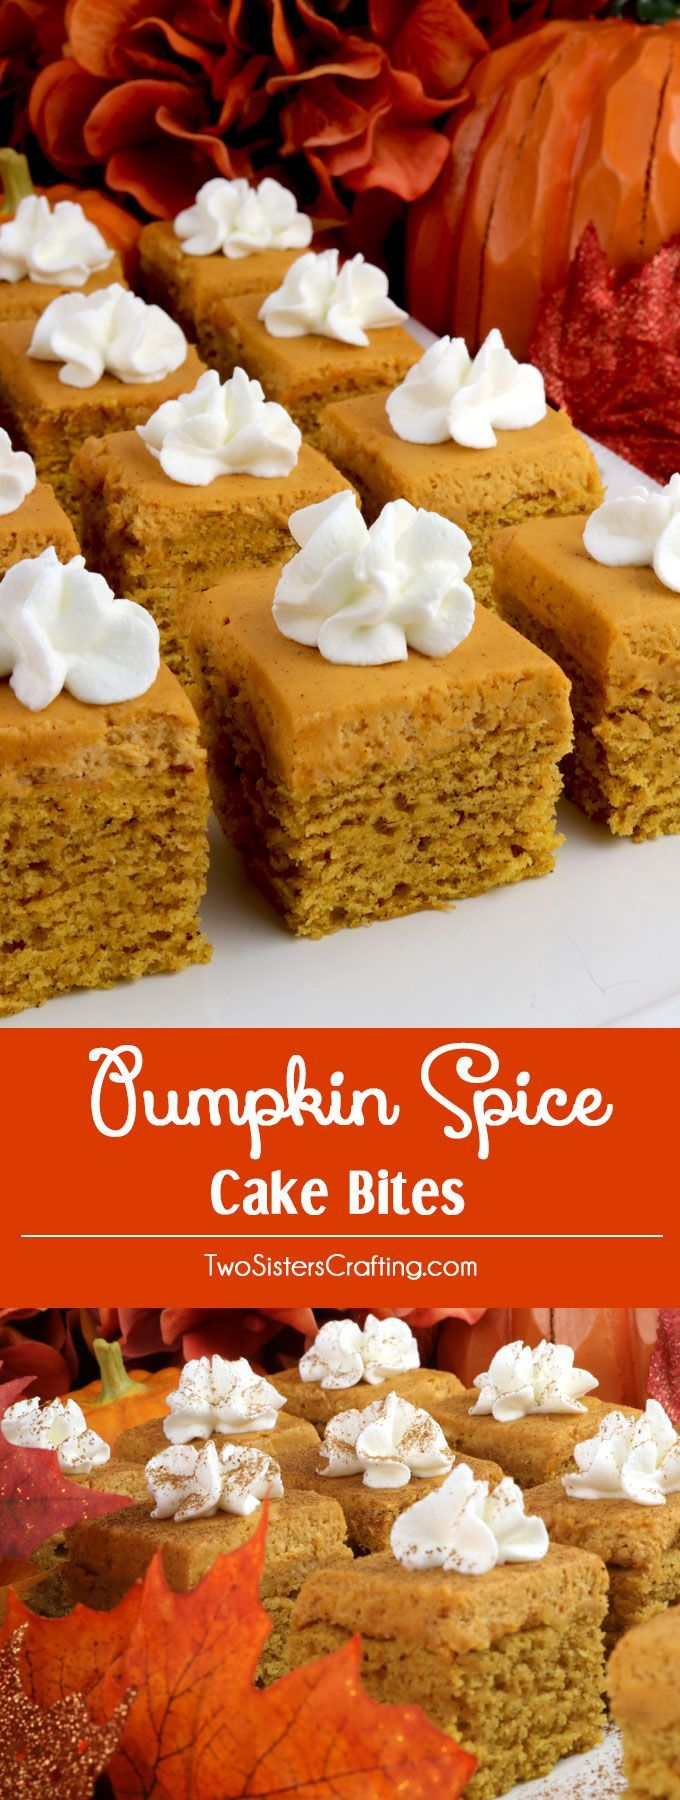 Pumpkin Spice Cake Bites - pumpkin cake and yummy Pumpkin Spice Whipped Cream Frosting combine together in a unique take on a Fall or Thanksgiving cupcake. Super easy to make, they will be a big hit with your friends and family as an Thanksgiving dessert or Fall treat. Pin this yummy Thanksgiving treat for later and follow us for more Thanksgiving food ideas.